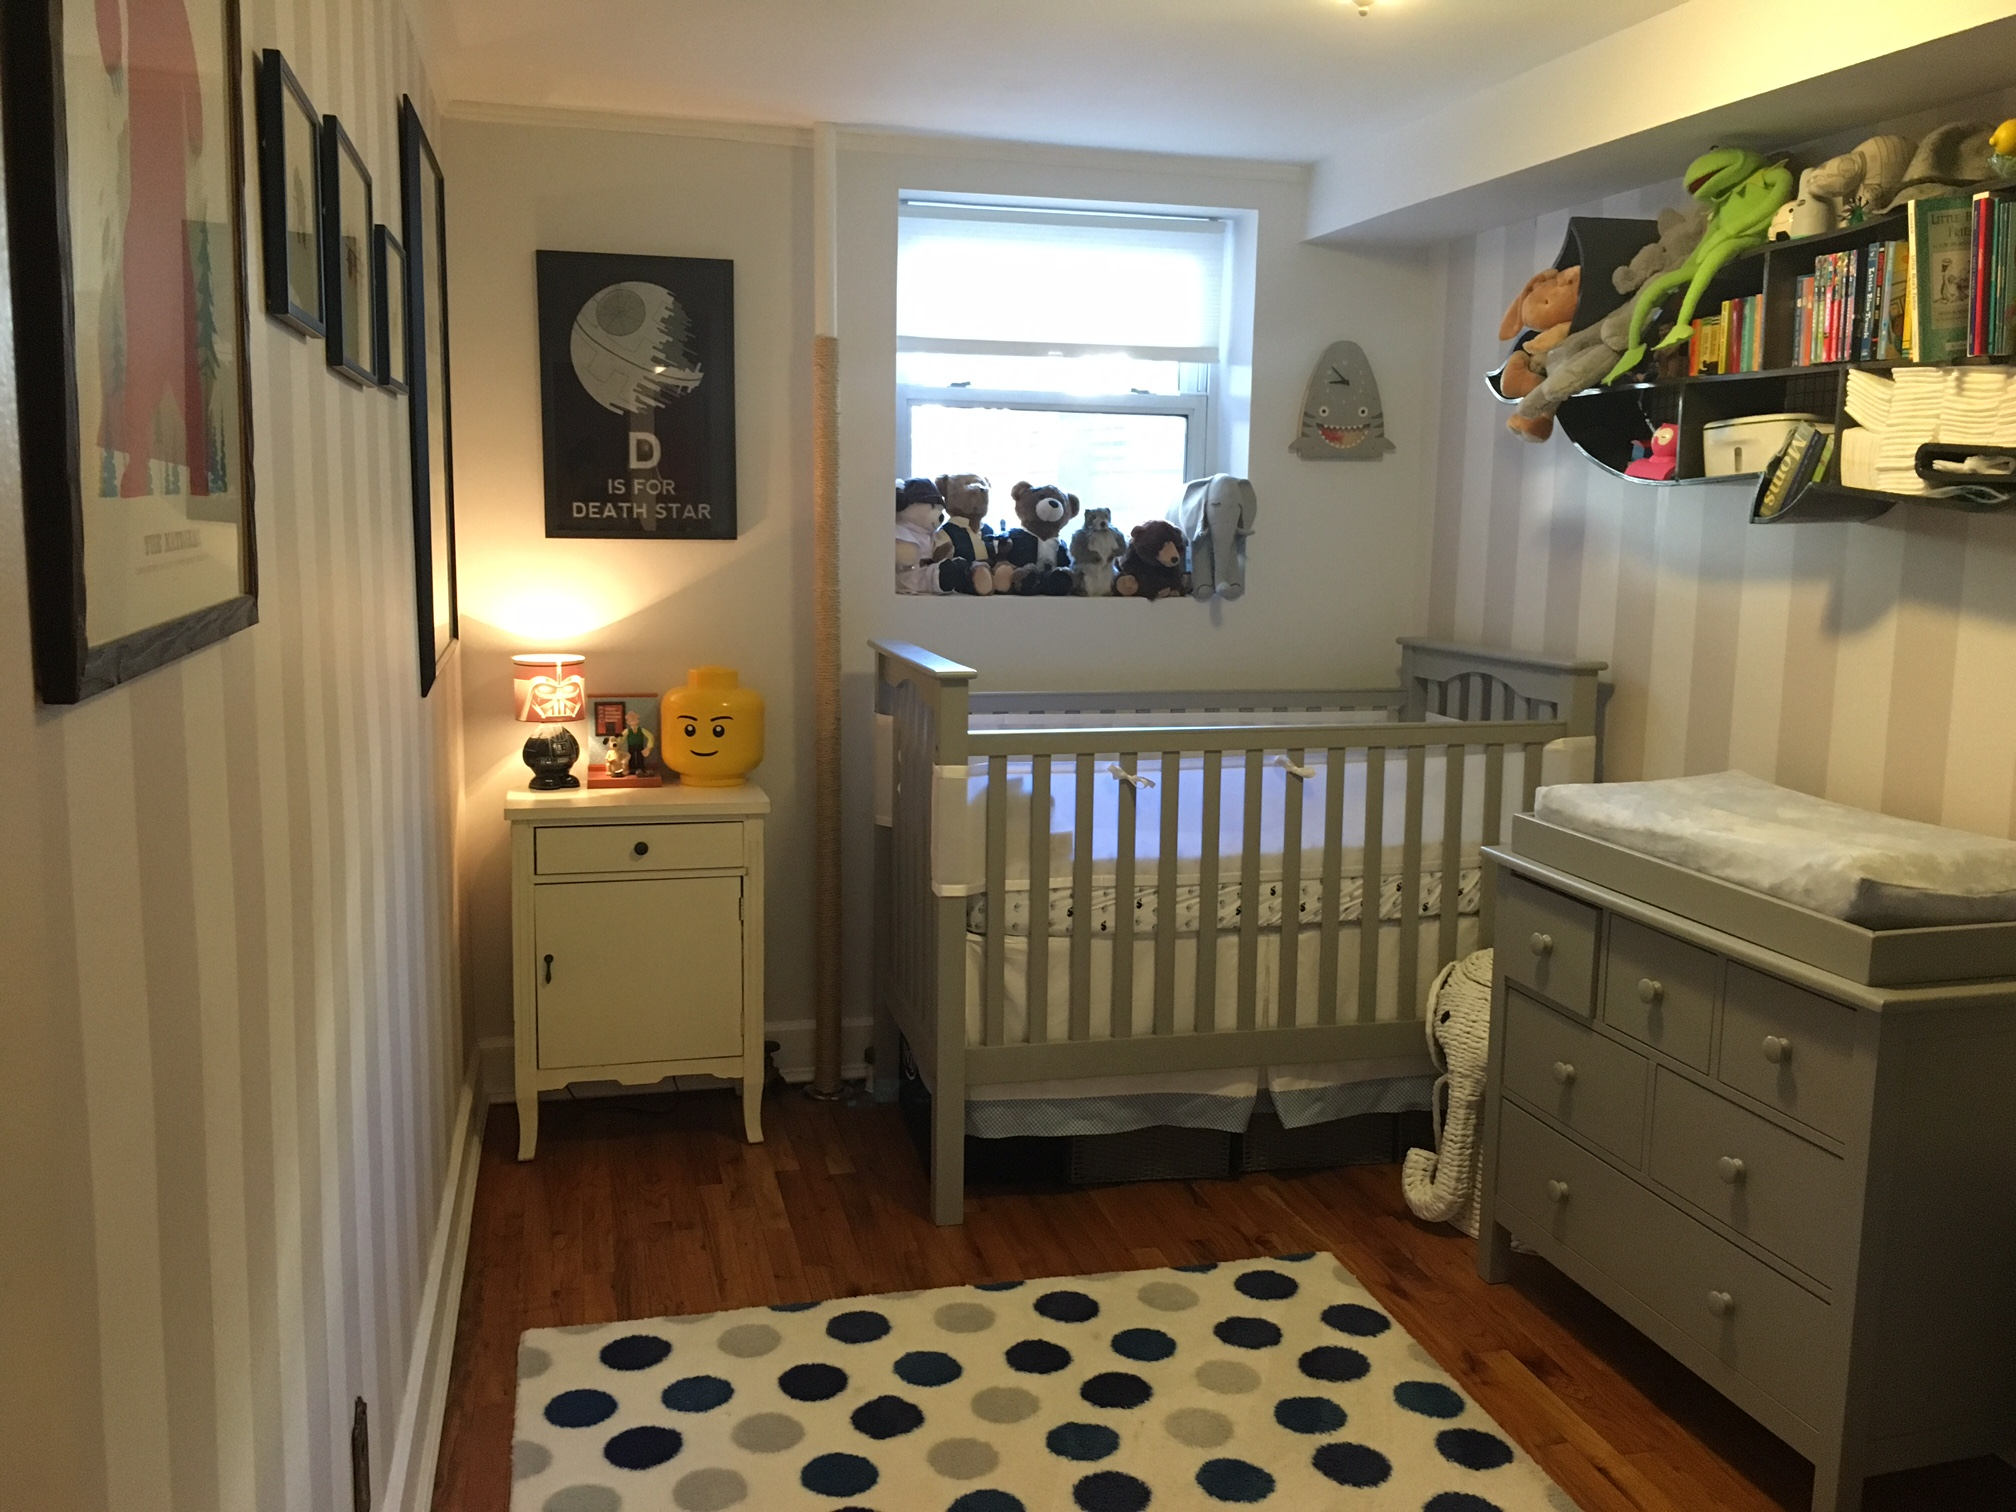 Nursery Decorating Ideas And Tips: 18 Things I Wish I